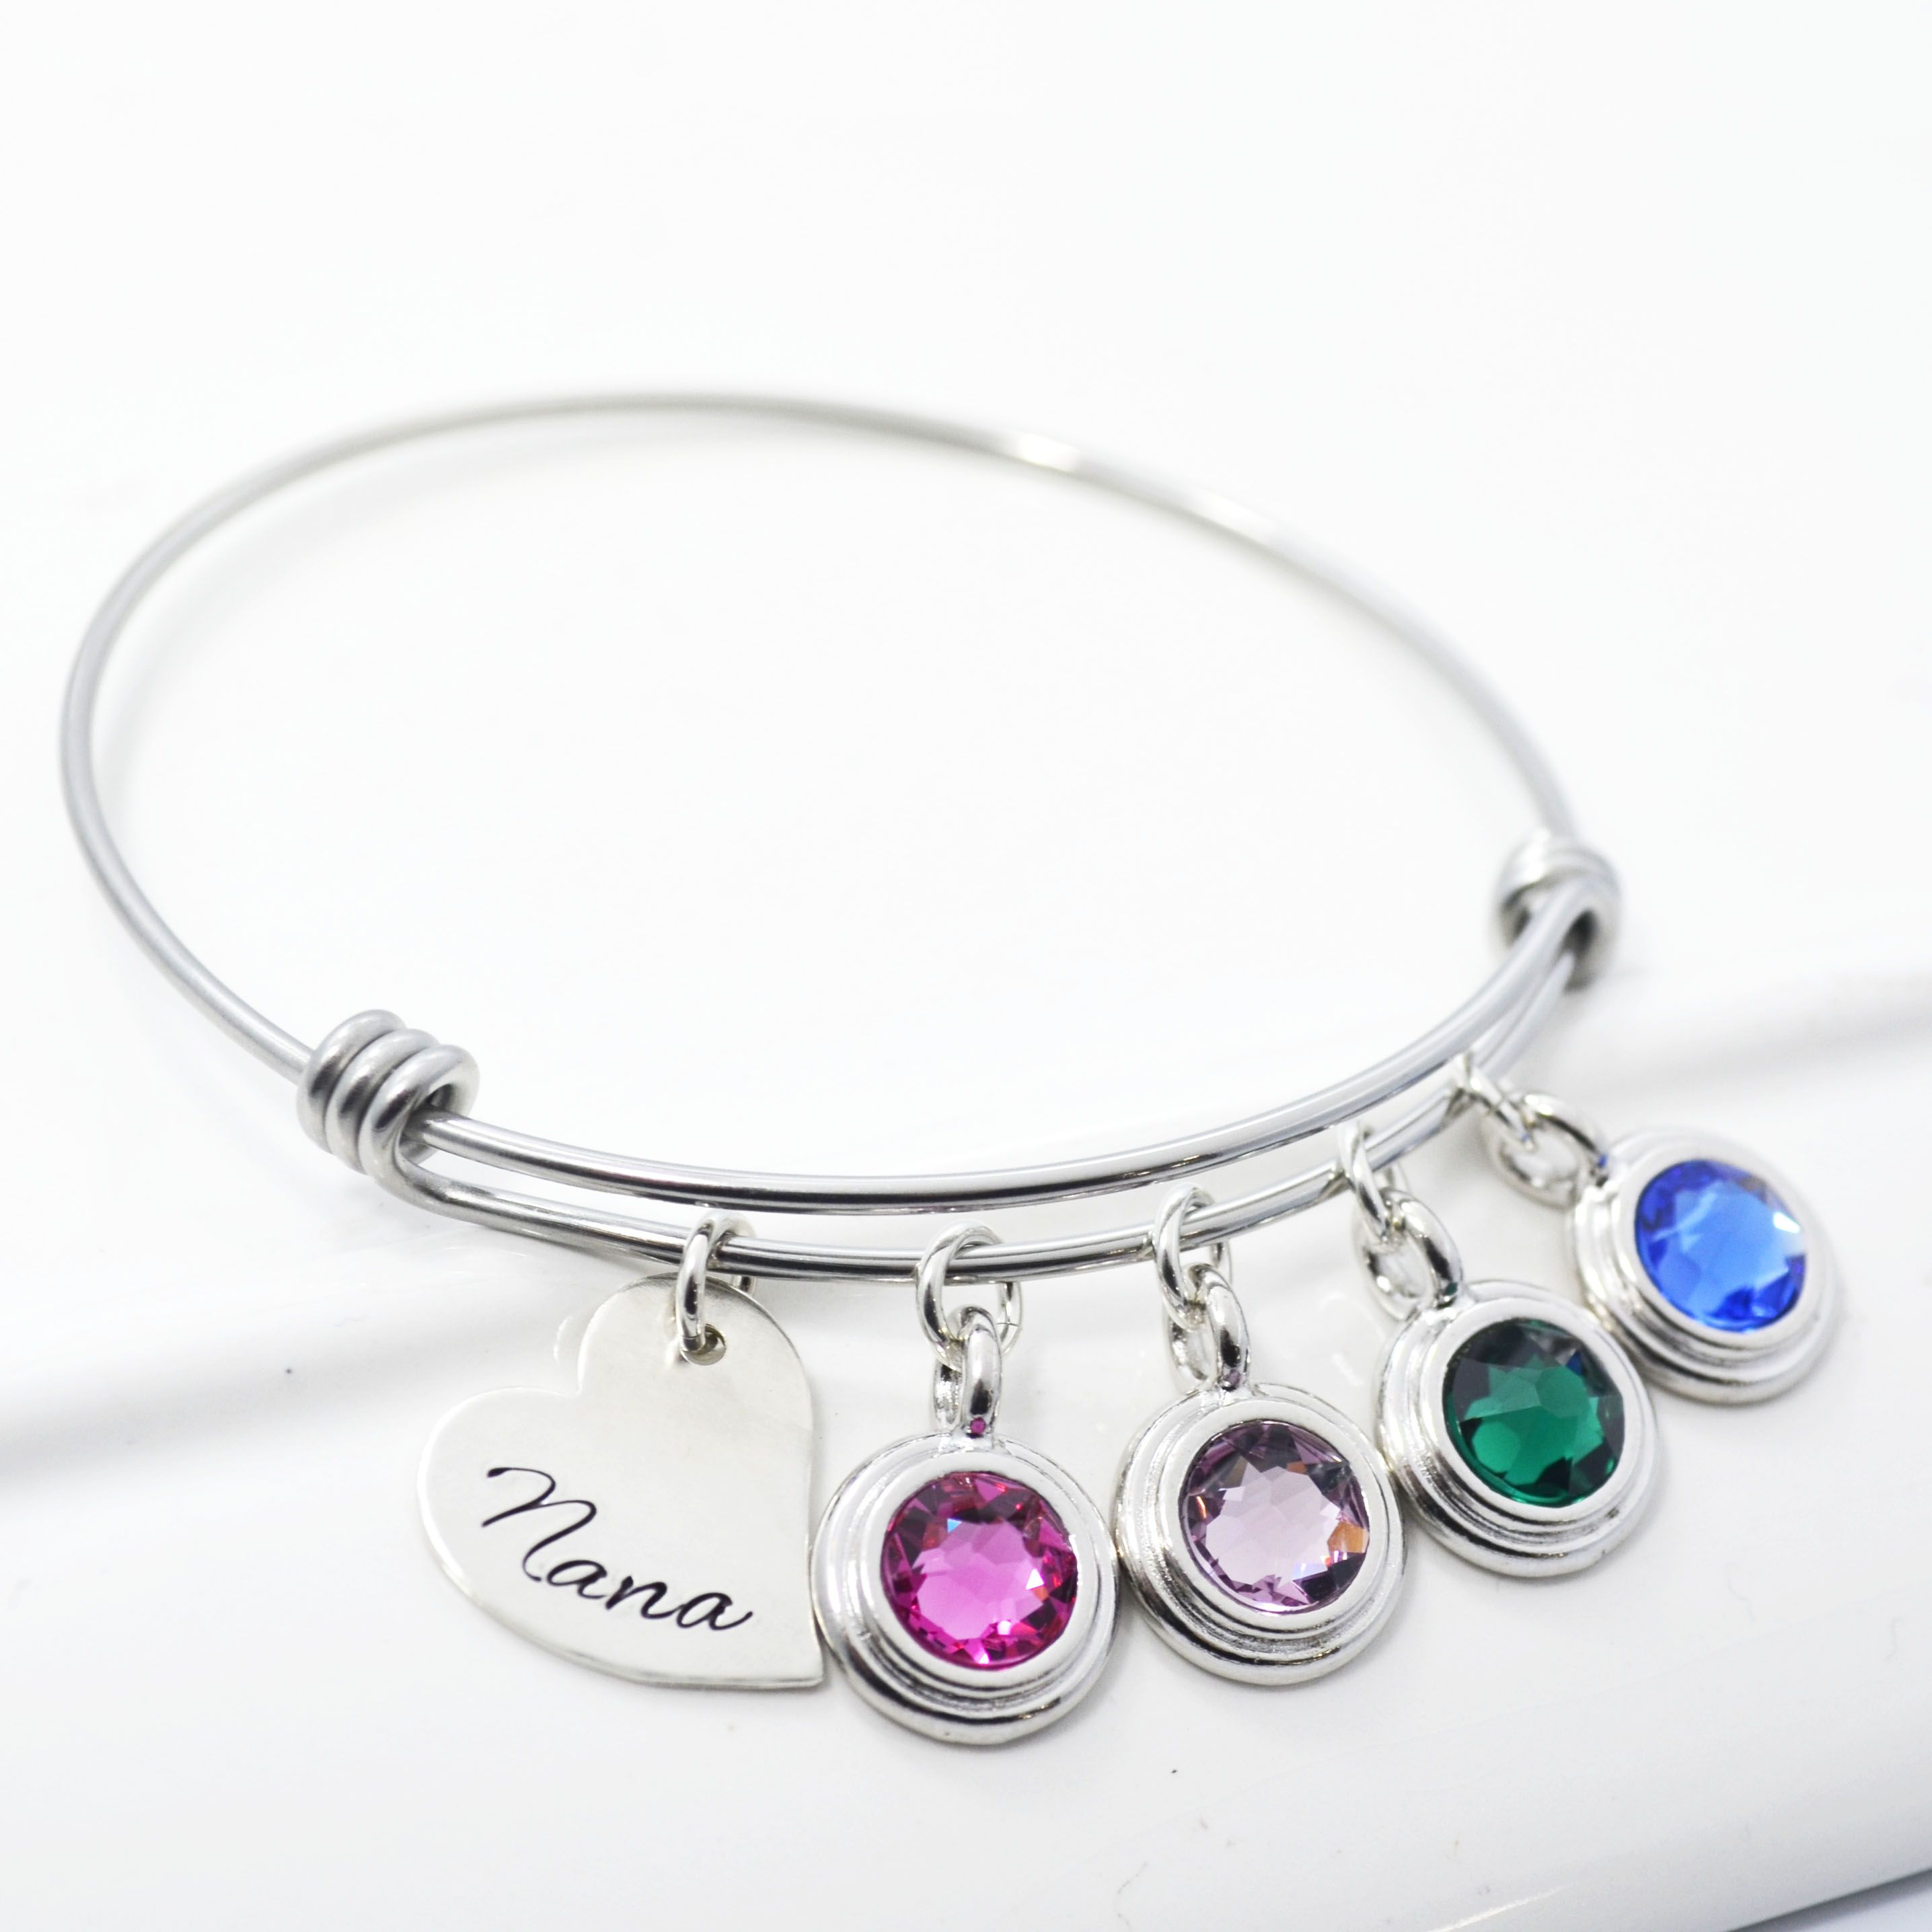 mother charm by bracelet designmejewelry bangle crafted custom bracelets hand bangles child a personalized buy adjustable silver birthstone stackable made